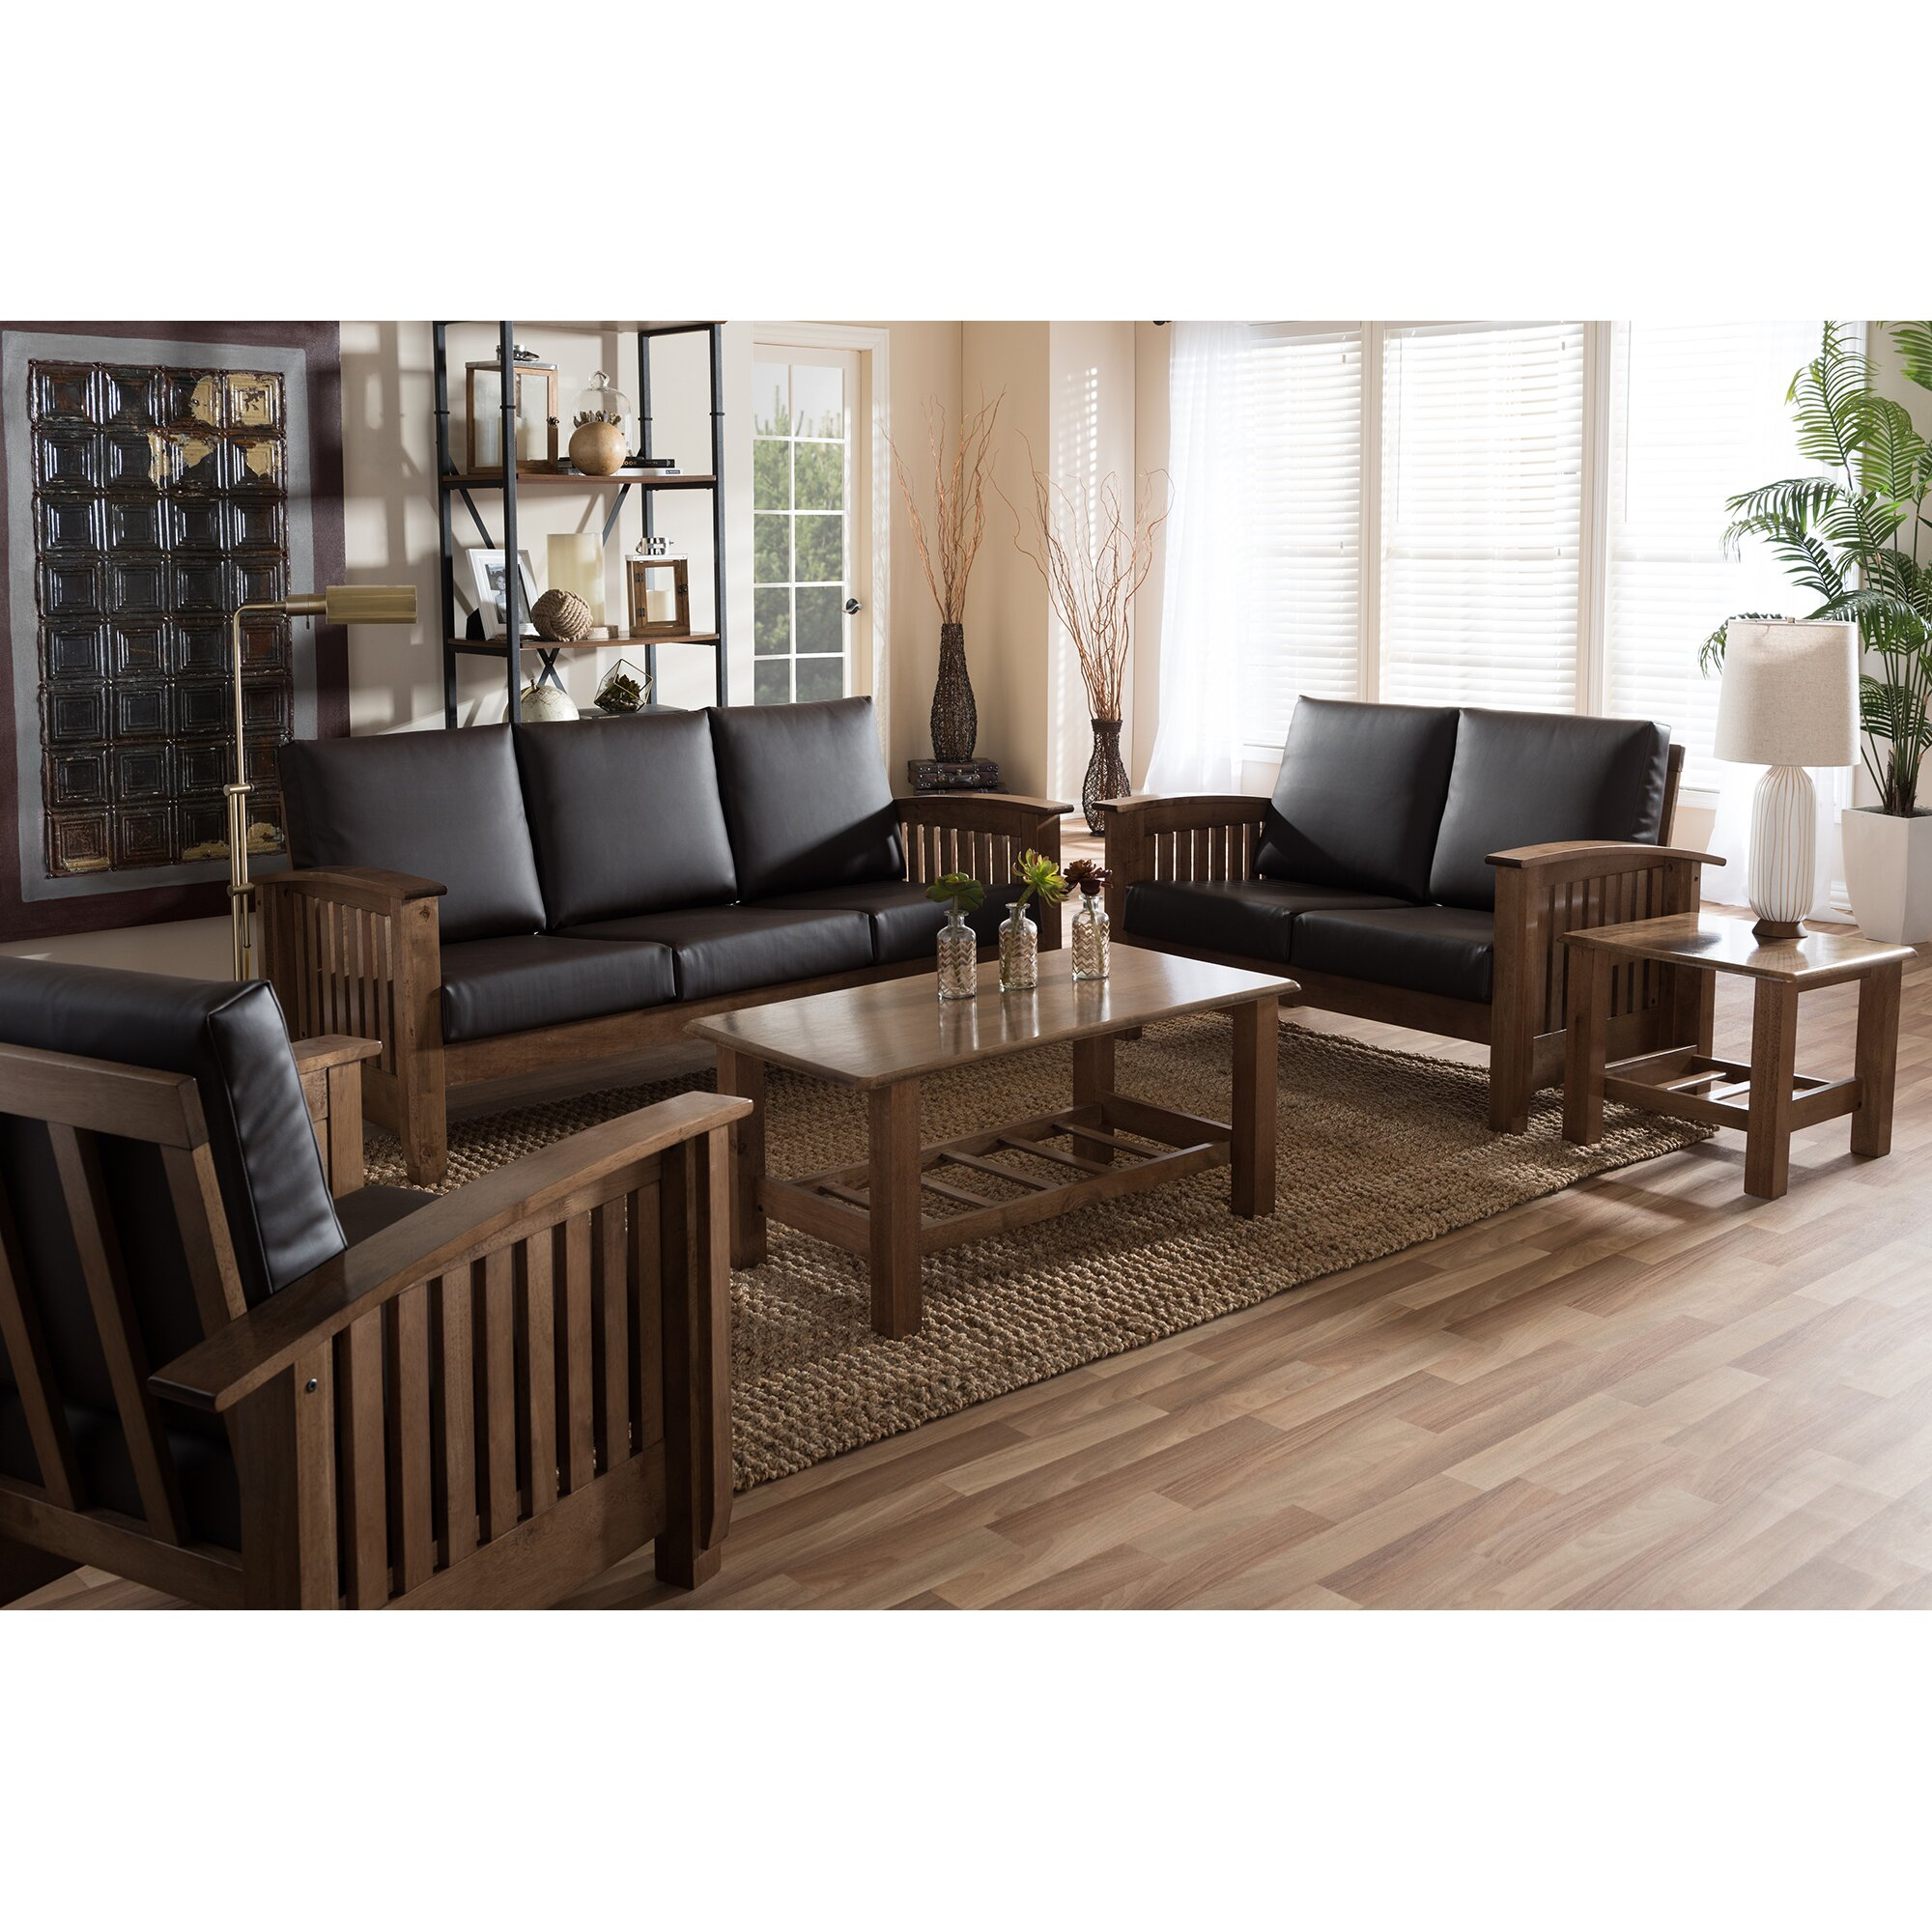 Baxton studio 5 piece living room set wayfair for 5 piece living room set